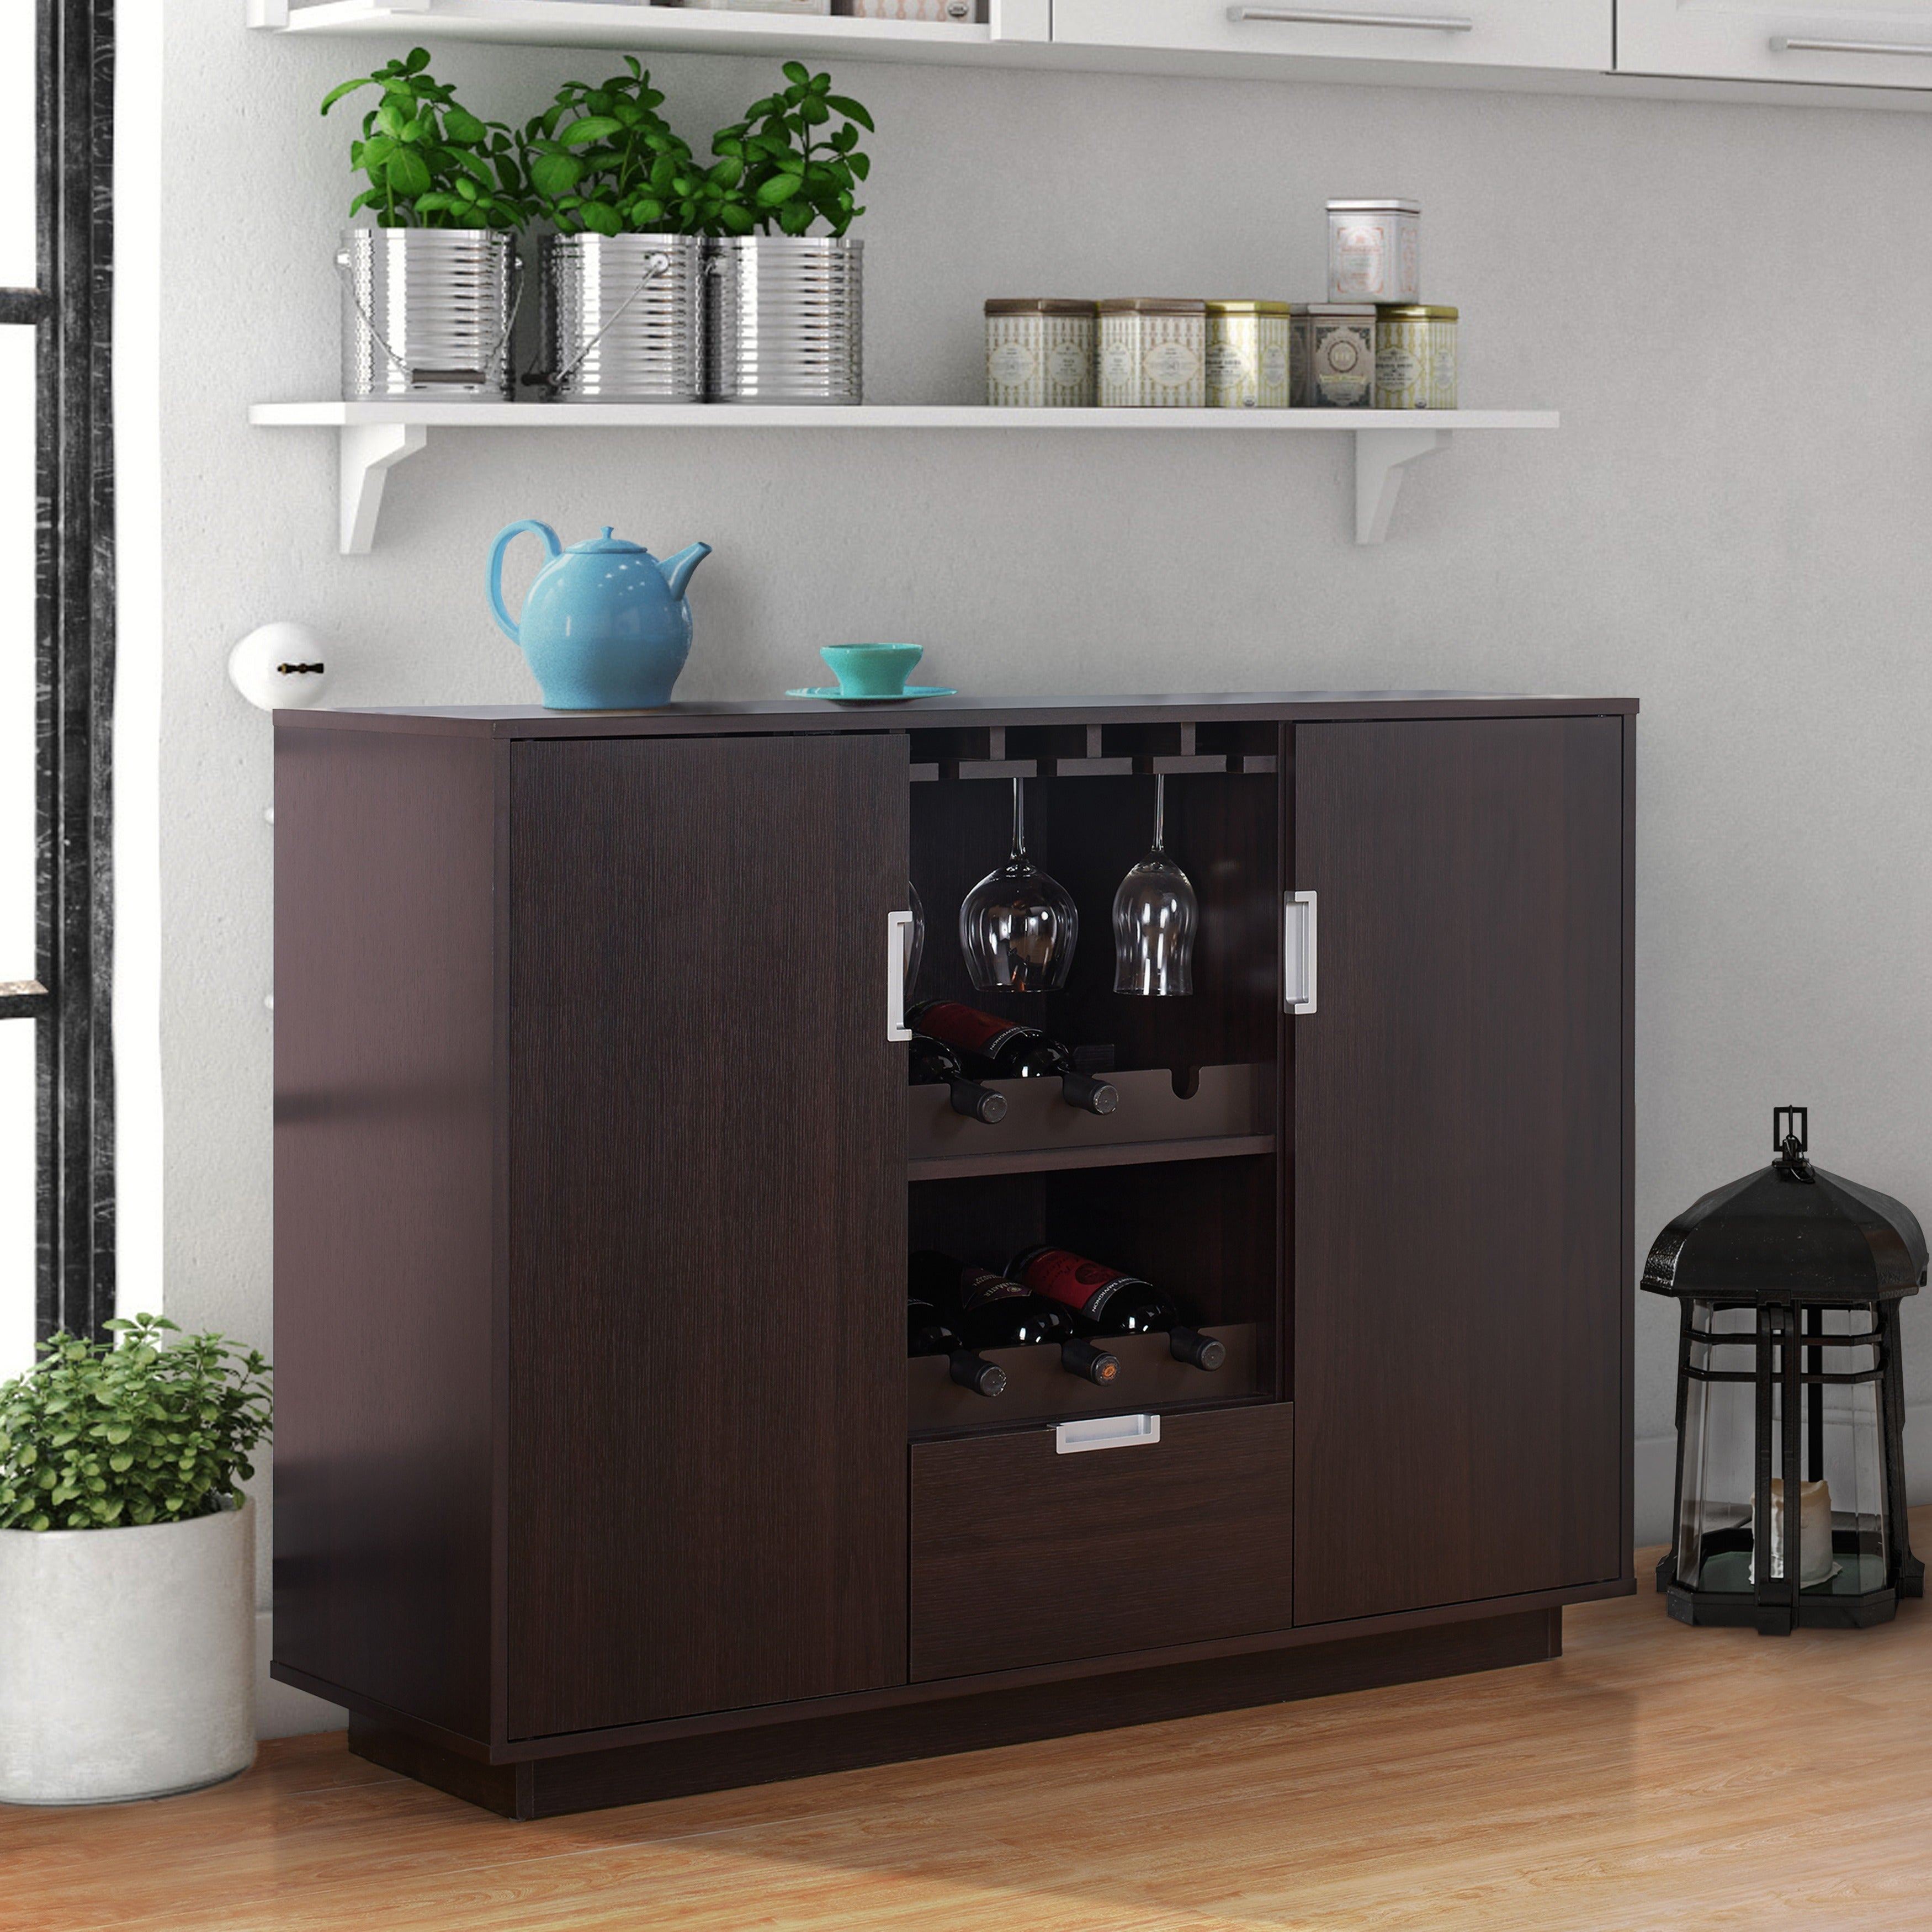 Buy Espresso Finish Buffets, Sideboards & China Cabinets Intended For Espresso Wood Multi Use Buffets (View 6 of 30)